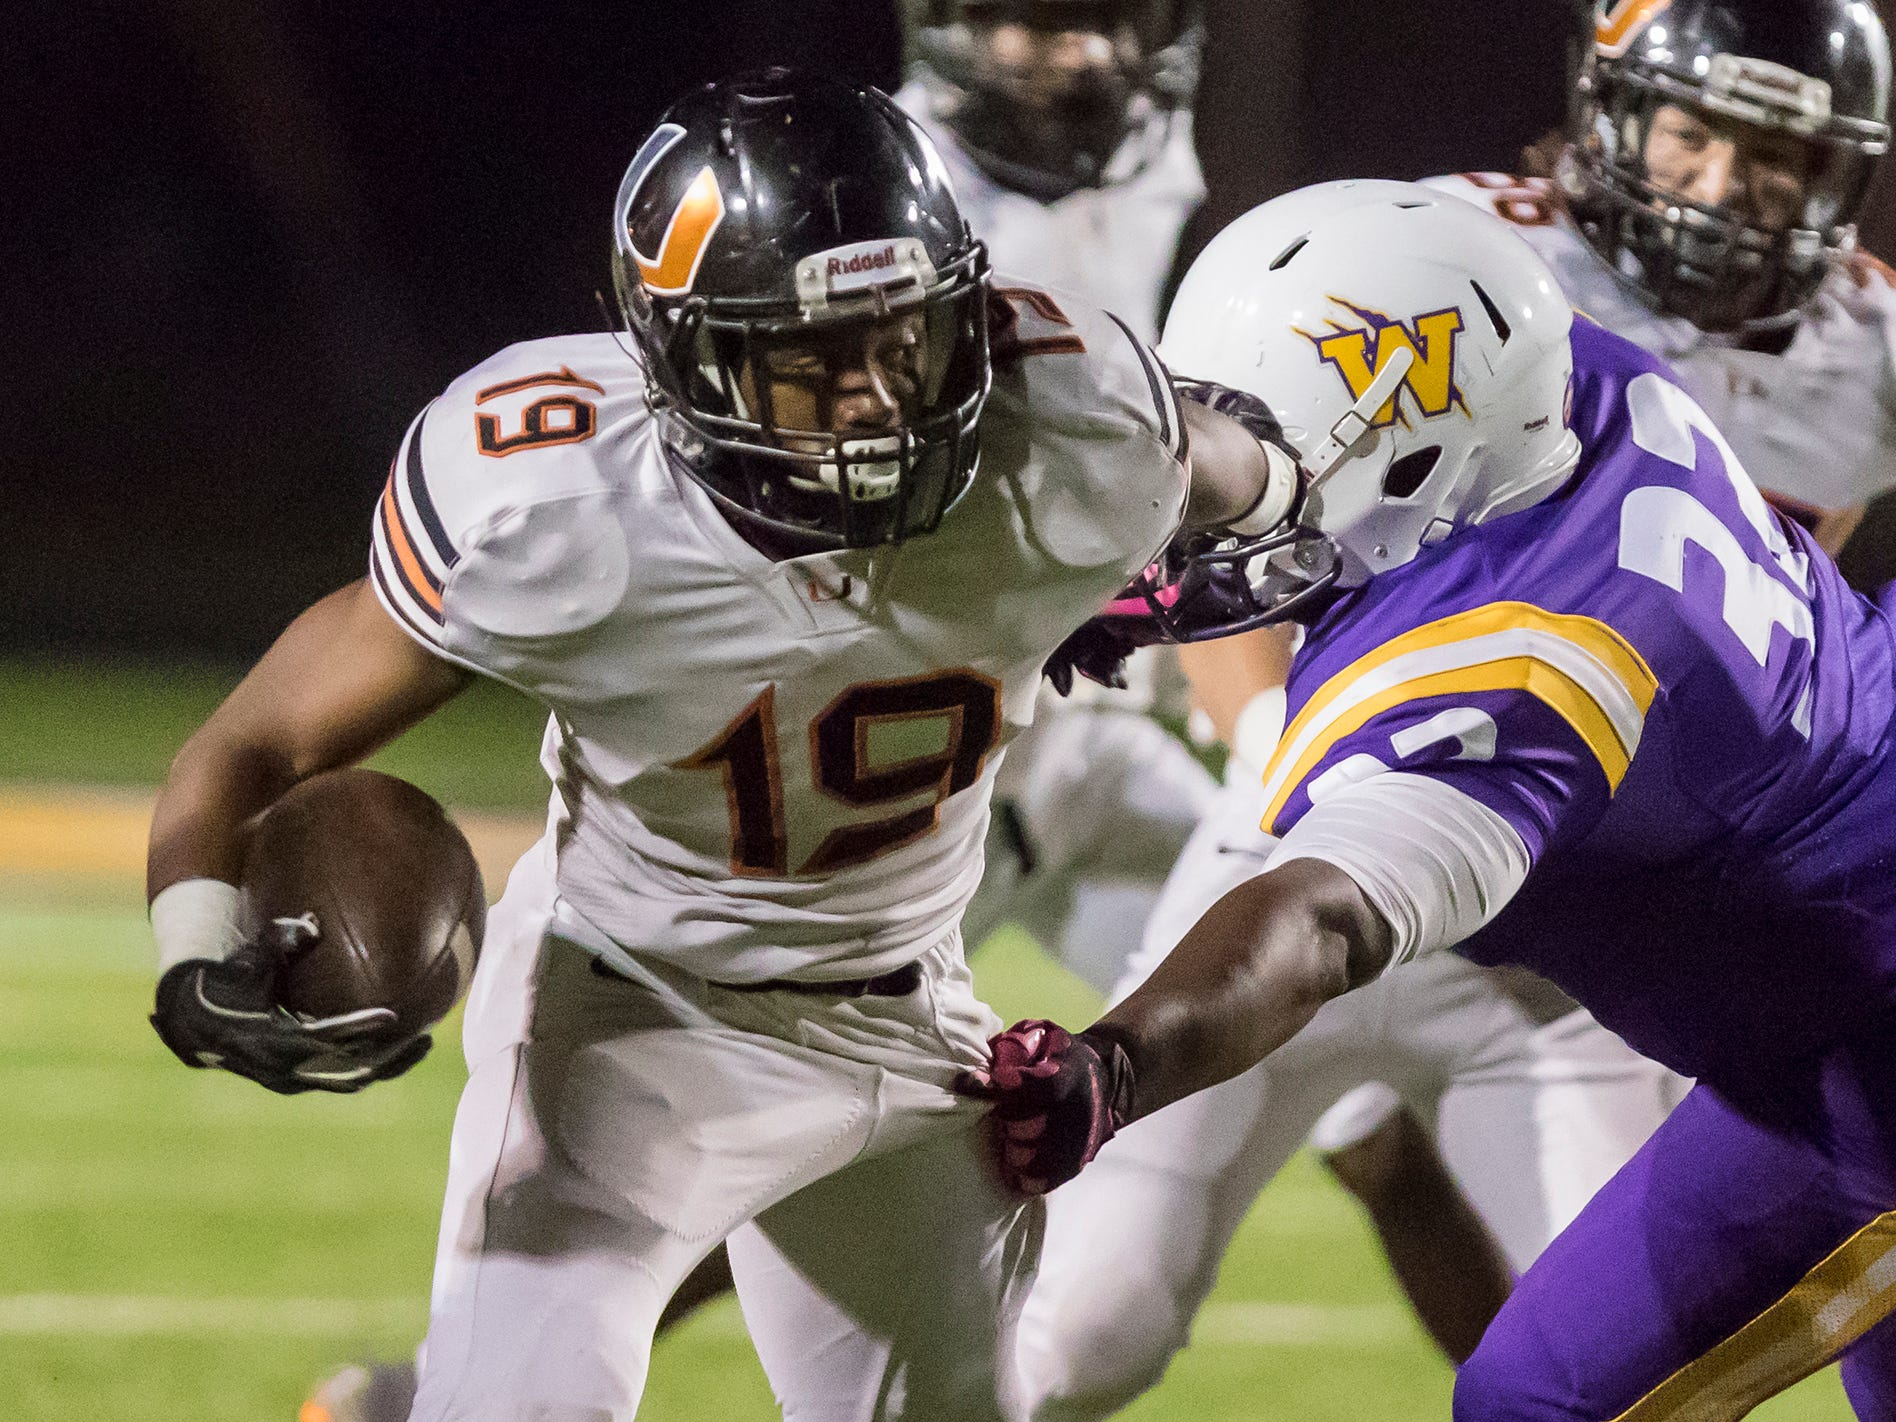 Union Parish defeated Wossman 50-45 in the waning seconds of the game at Wossman High School in Monroe, La. on Nov. 2.